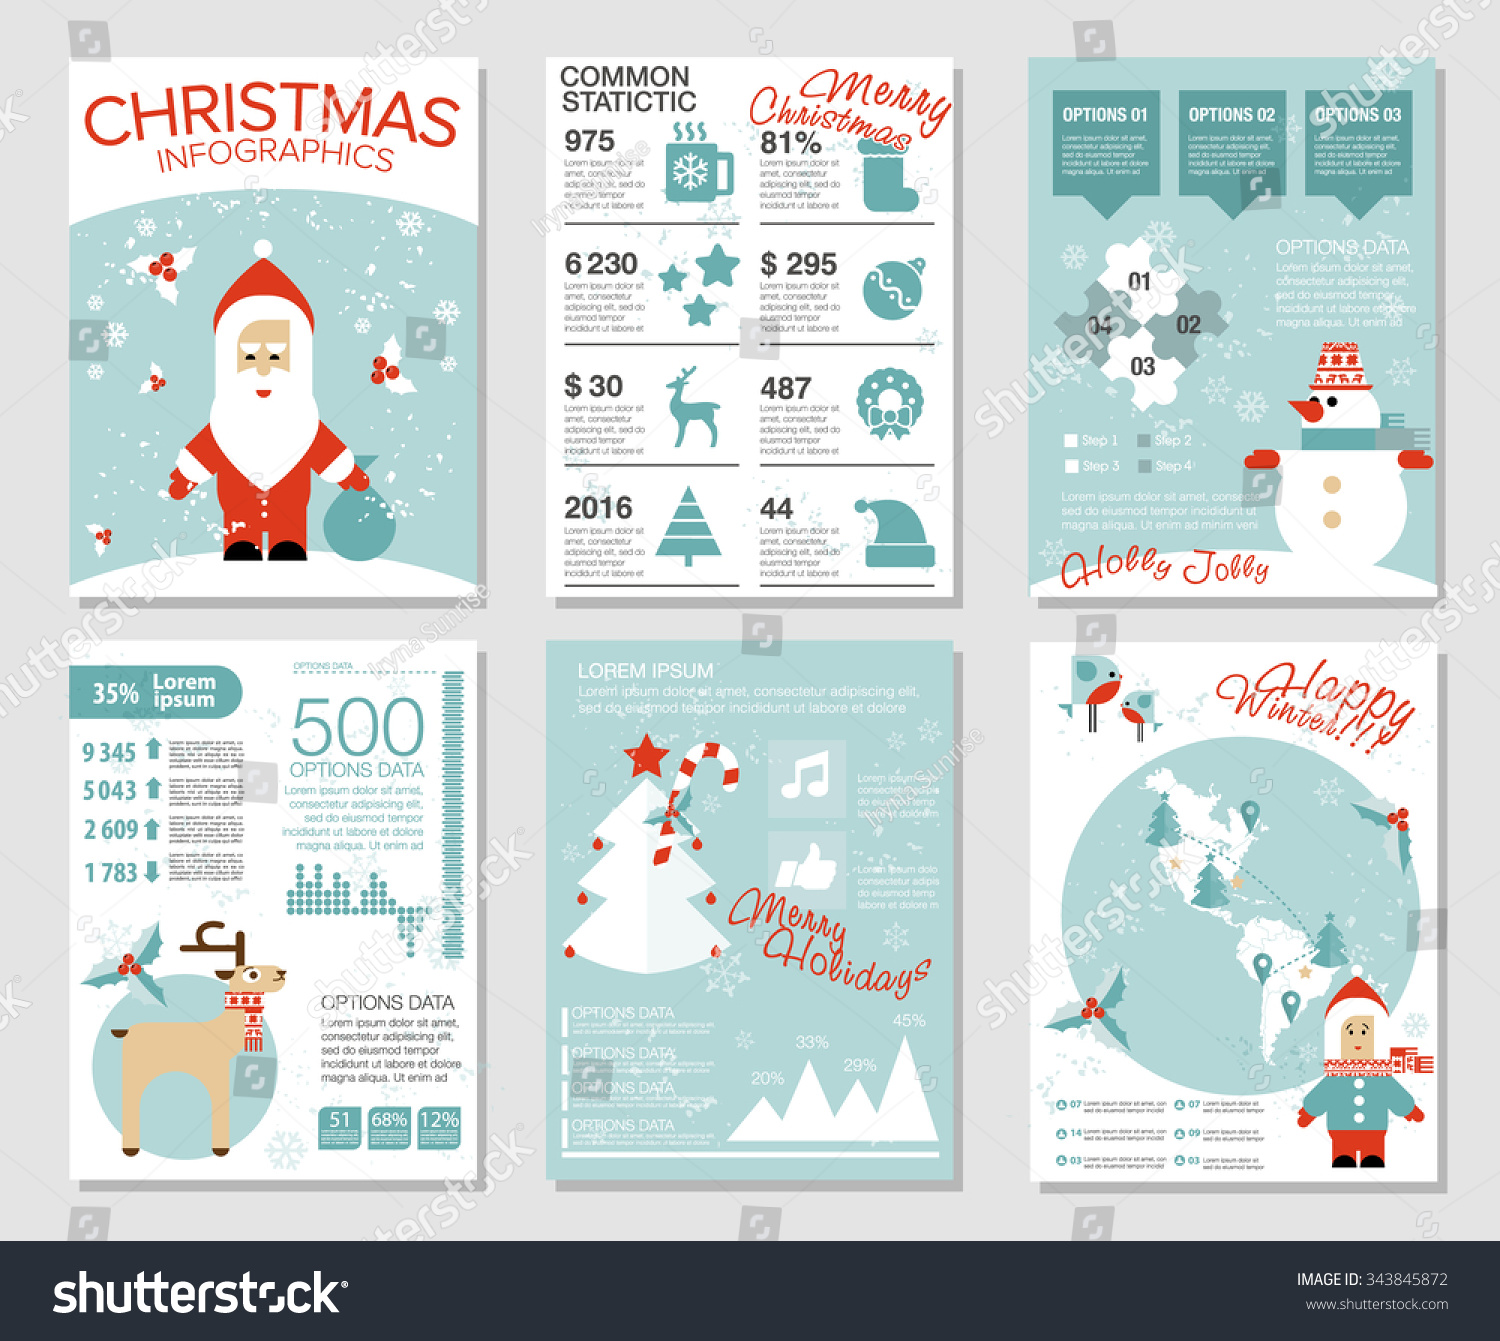 Collection 6 Christmas Cards Infographics Templates Stock Vector Tree Diagram Of With Santa Deer Snowman Birds